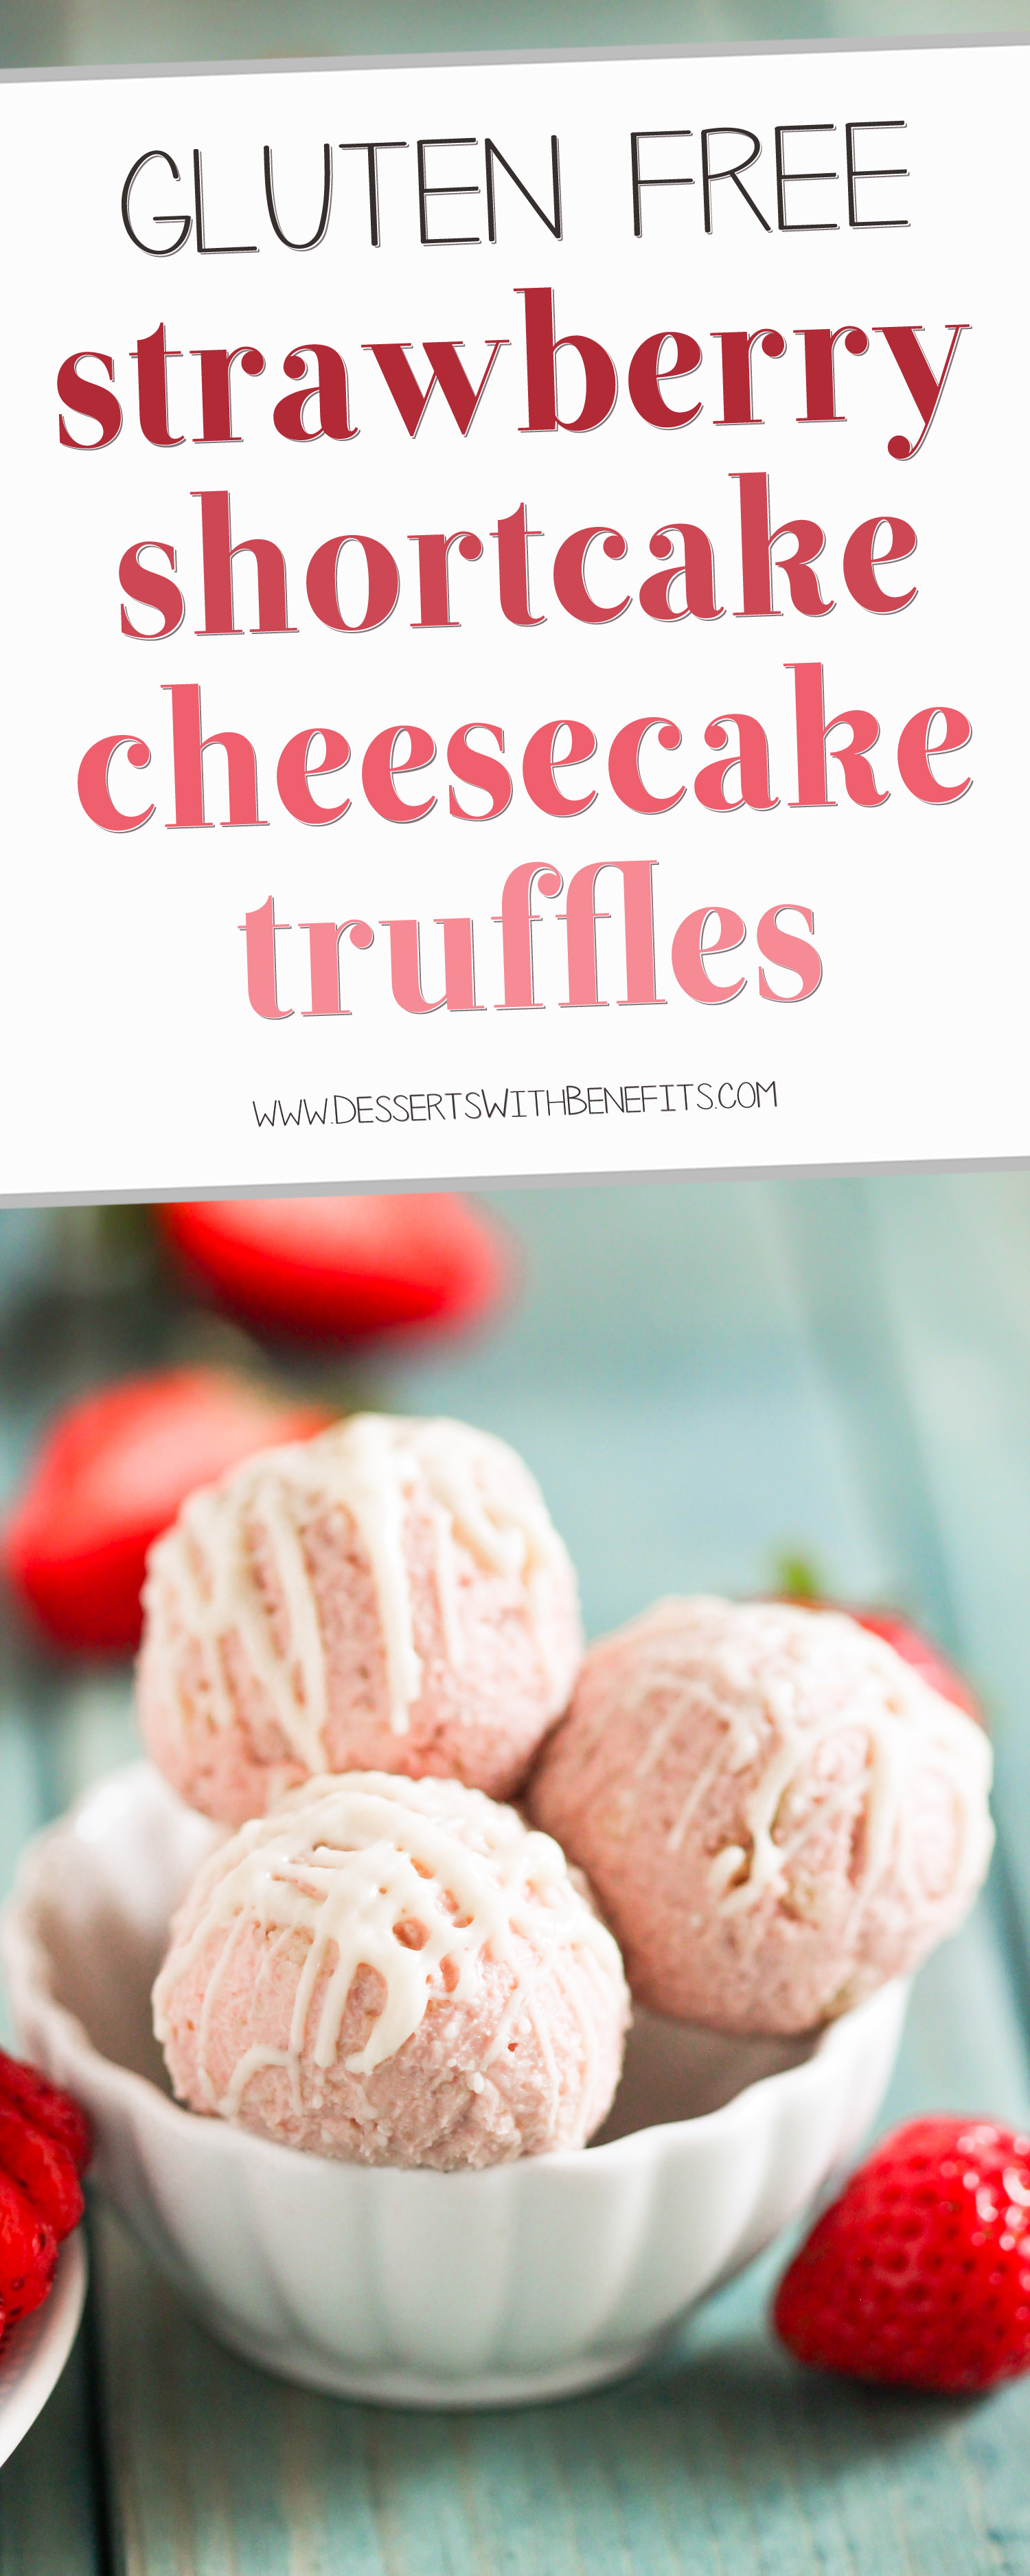 These Gluten Free Strawberry Shortcake Cheesecake Truffles are made withrealstrawberry cheesecake and sugar cookies chunks, and are coated in rich and delicious white chocolate. If you're looking for a guilt-free bite-sized treat, you've found it! Healthy Dessert Recipes at the Desserts With Benefits Blog